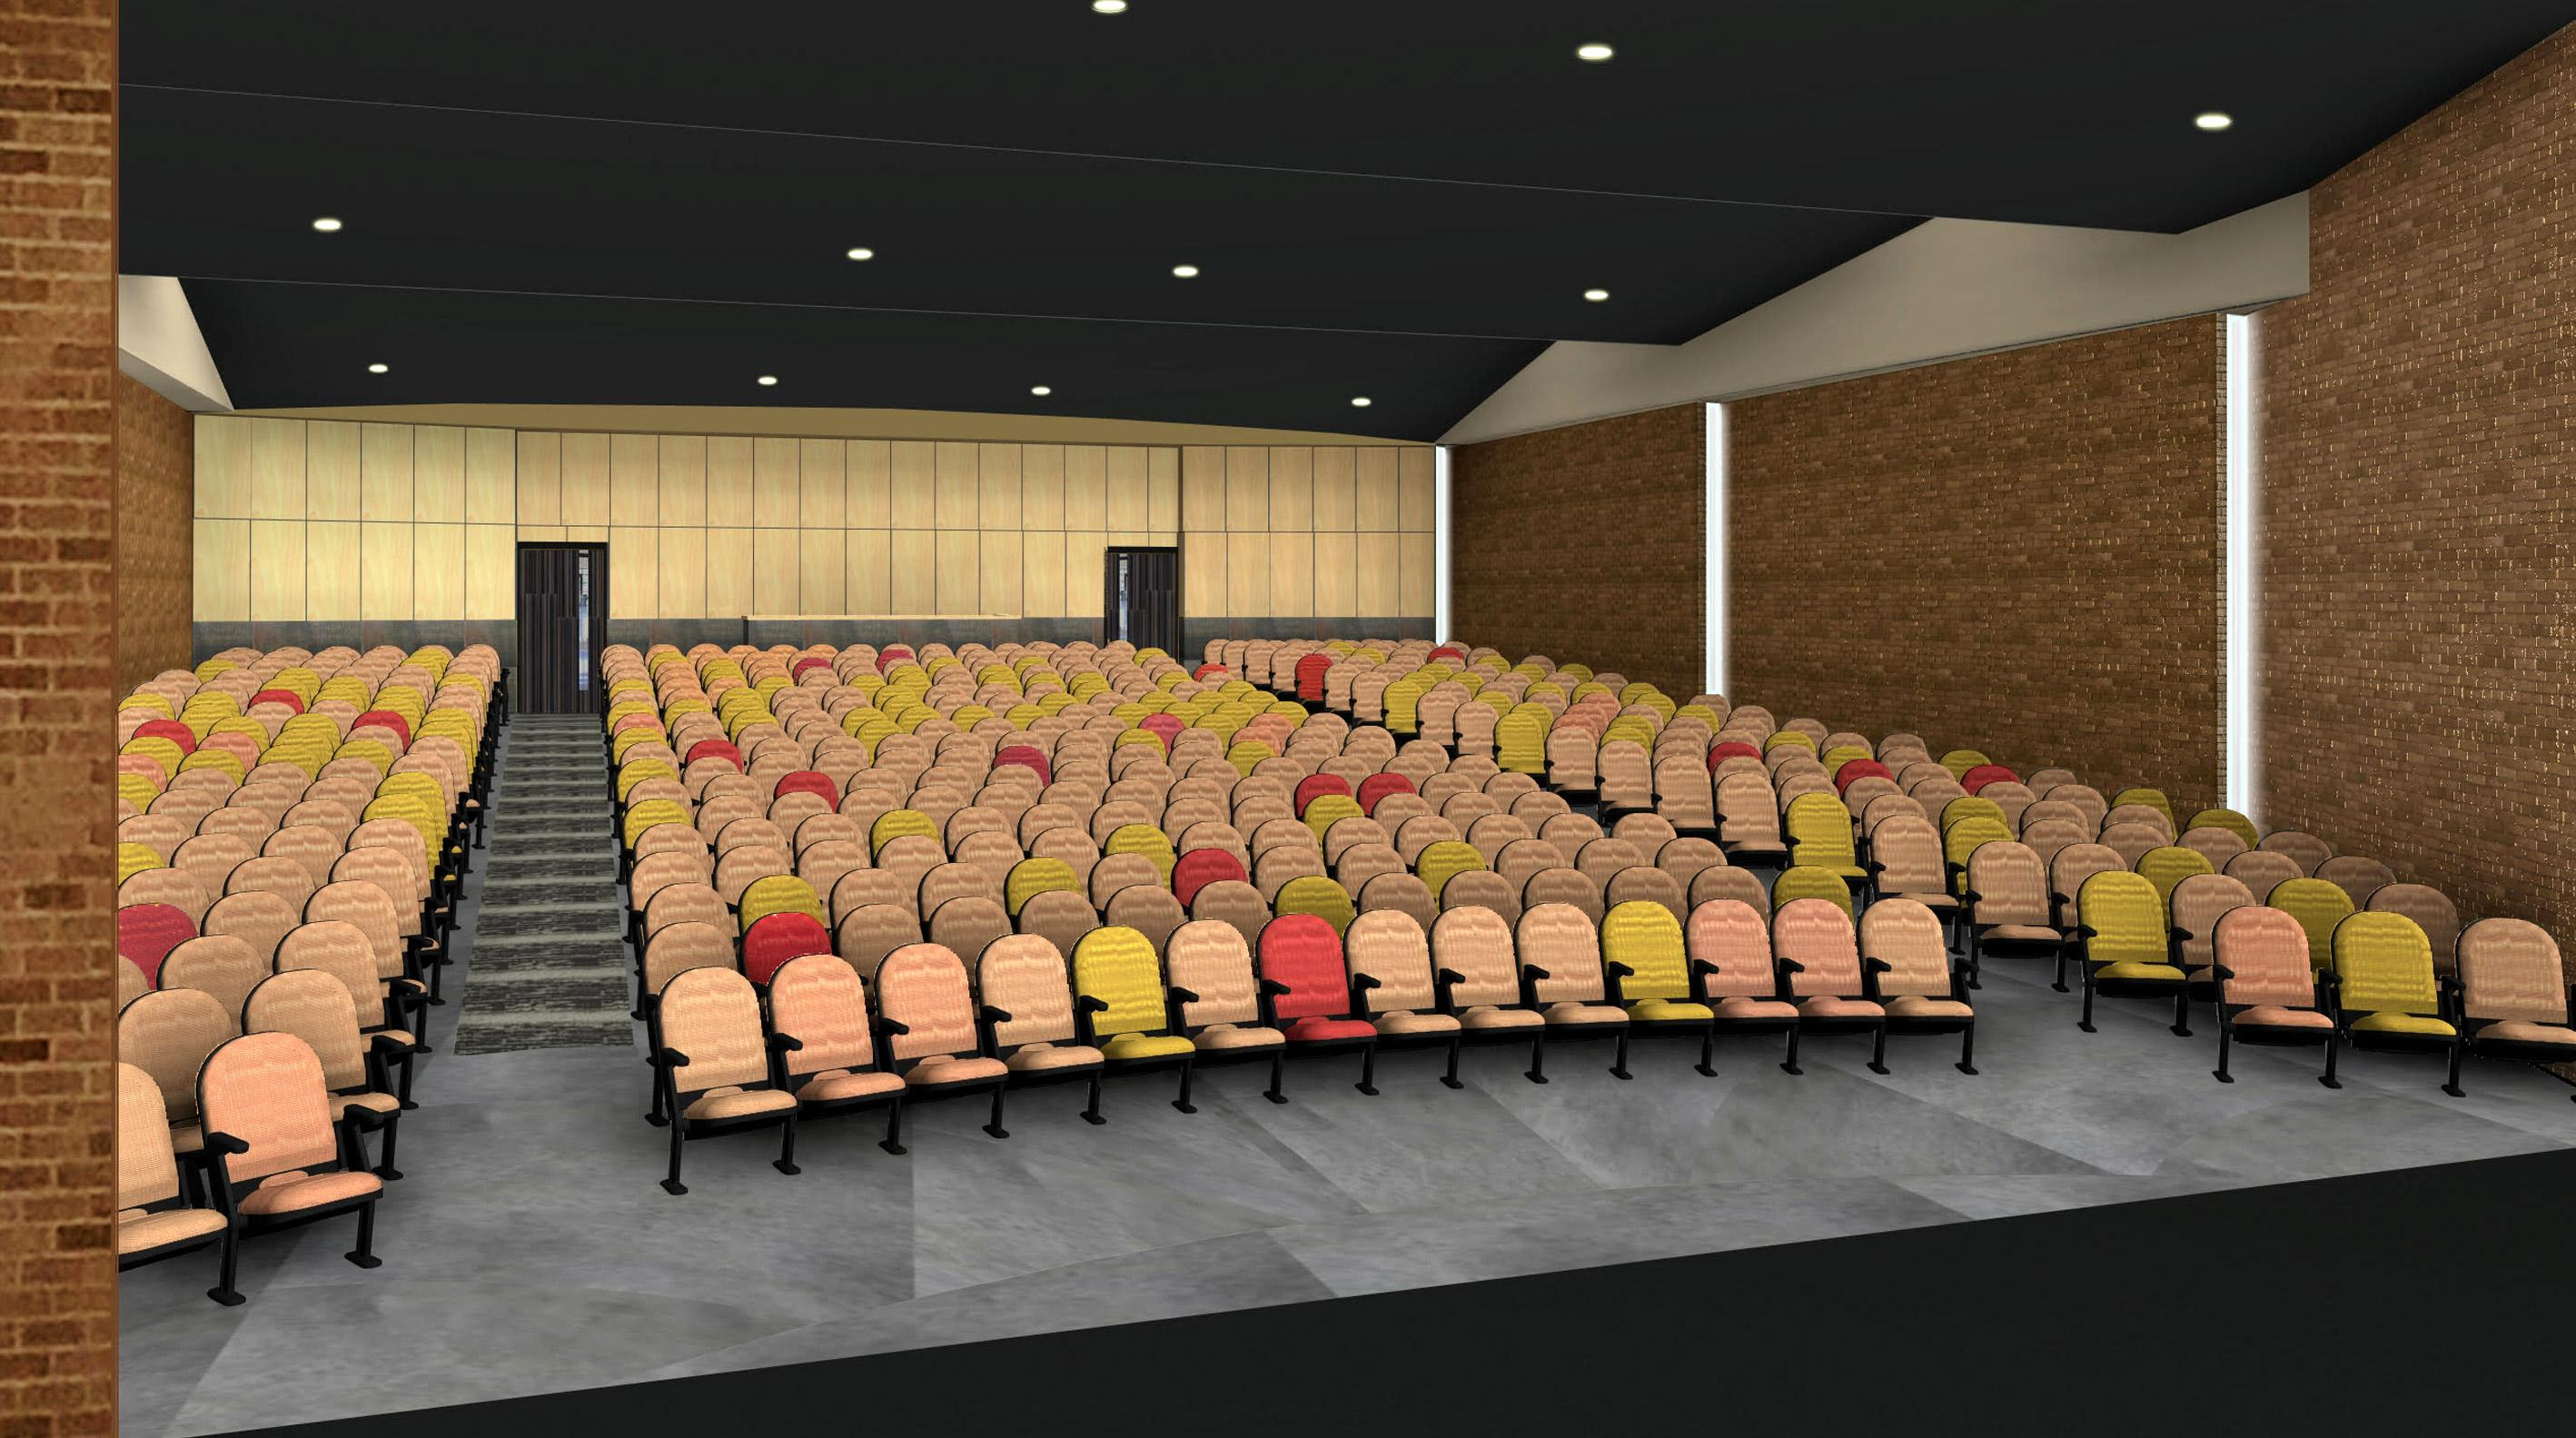 Photo of an auditorium